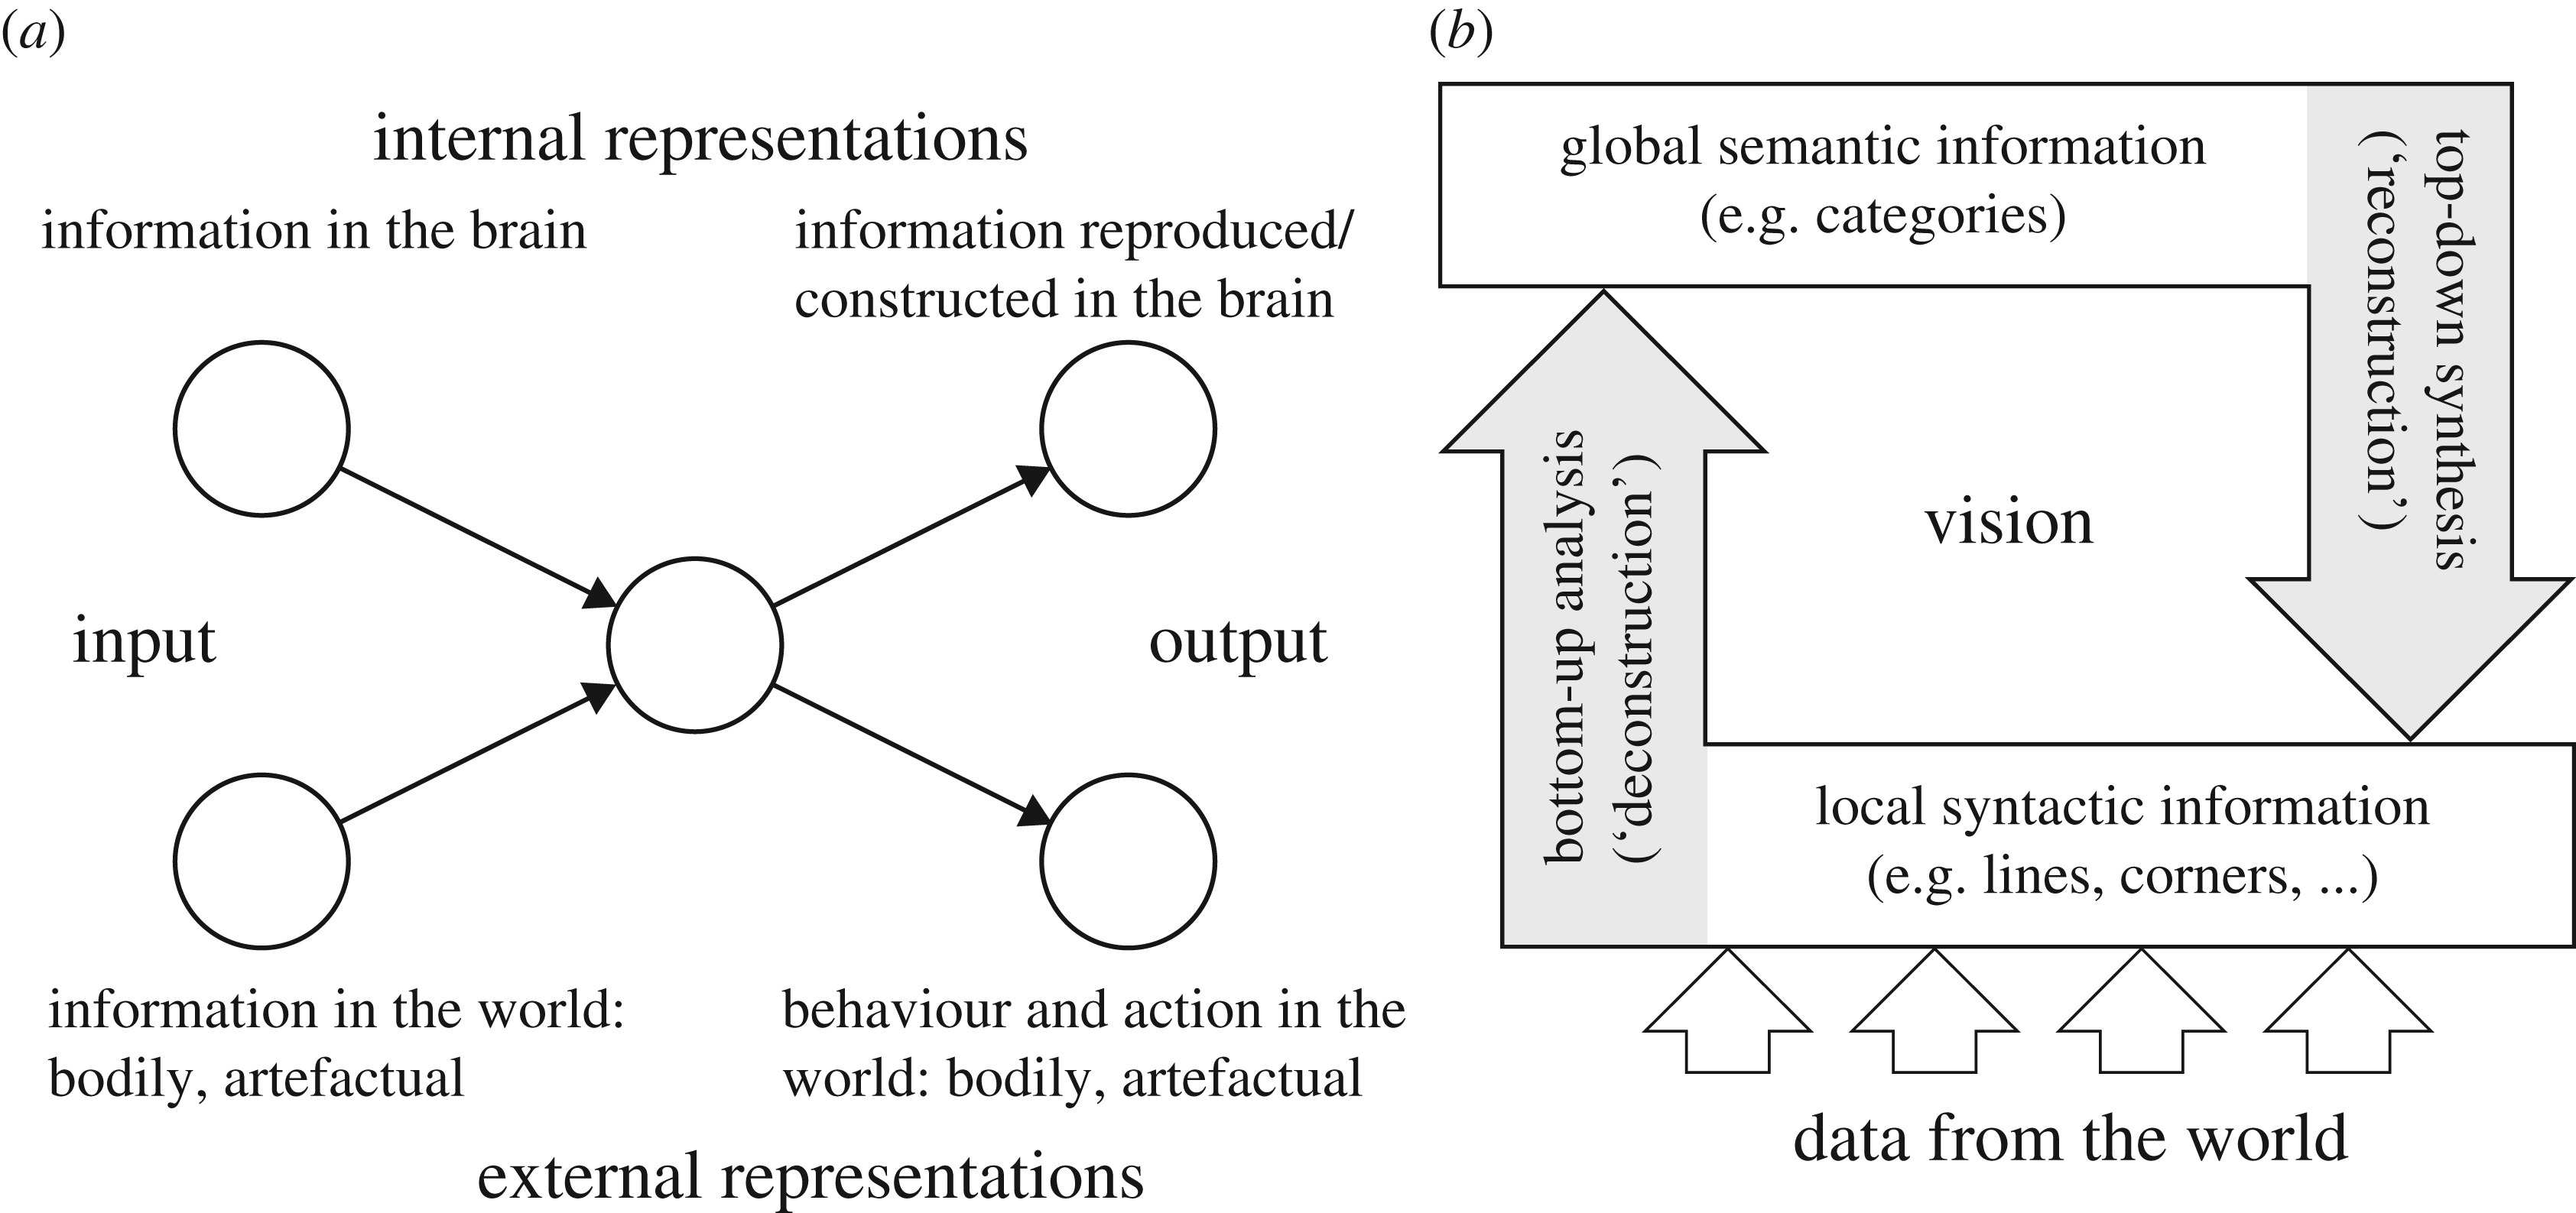 A synergetic perspective on urban scaling, urban regulatory